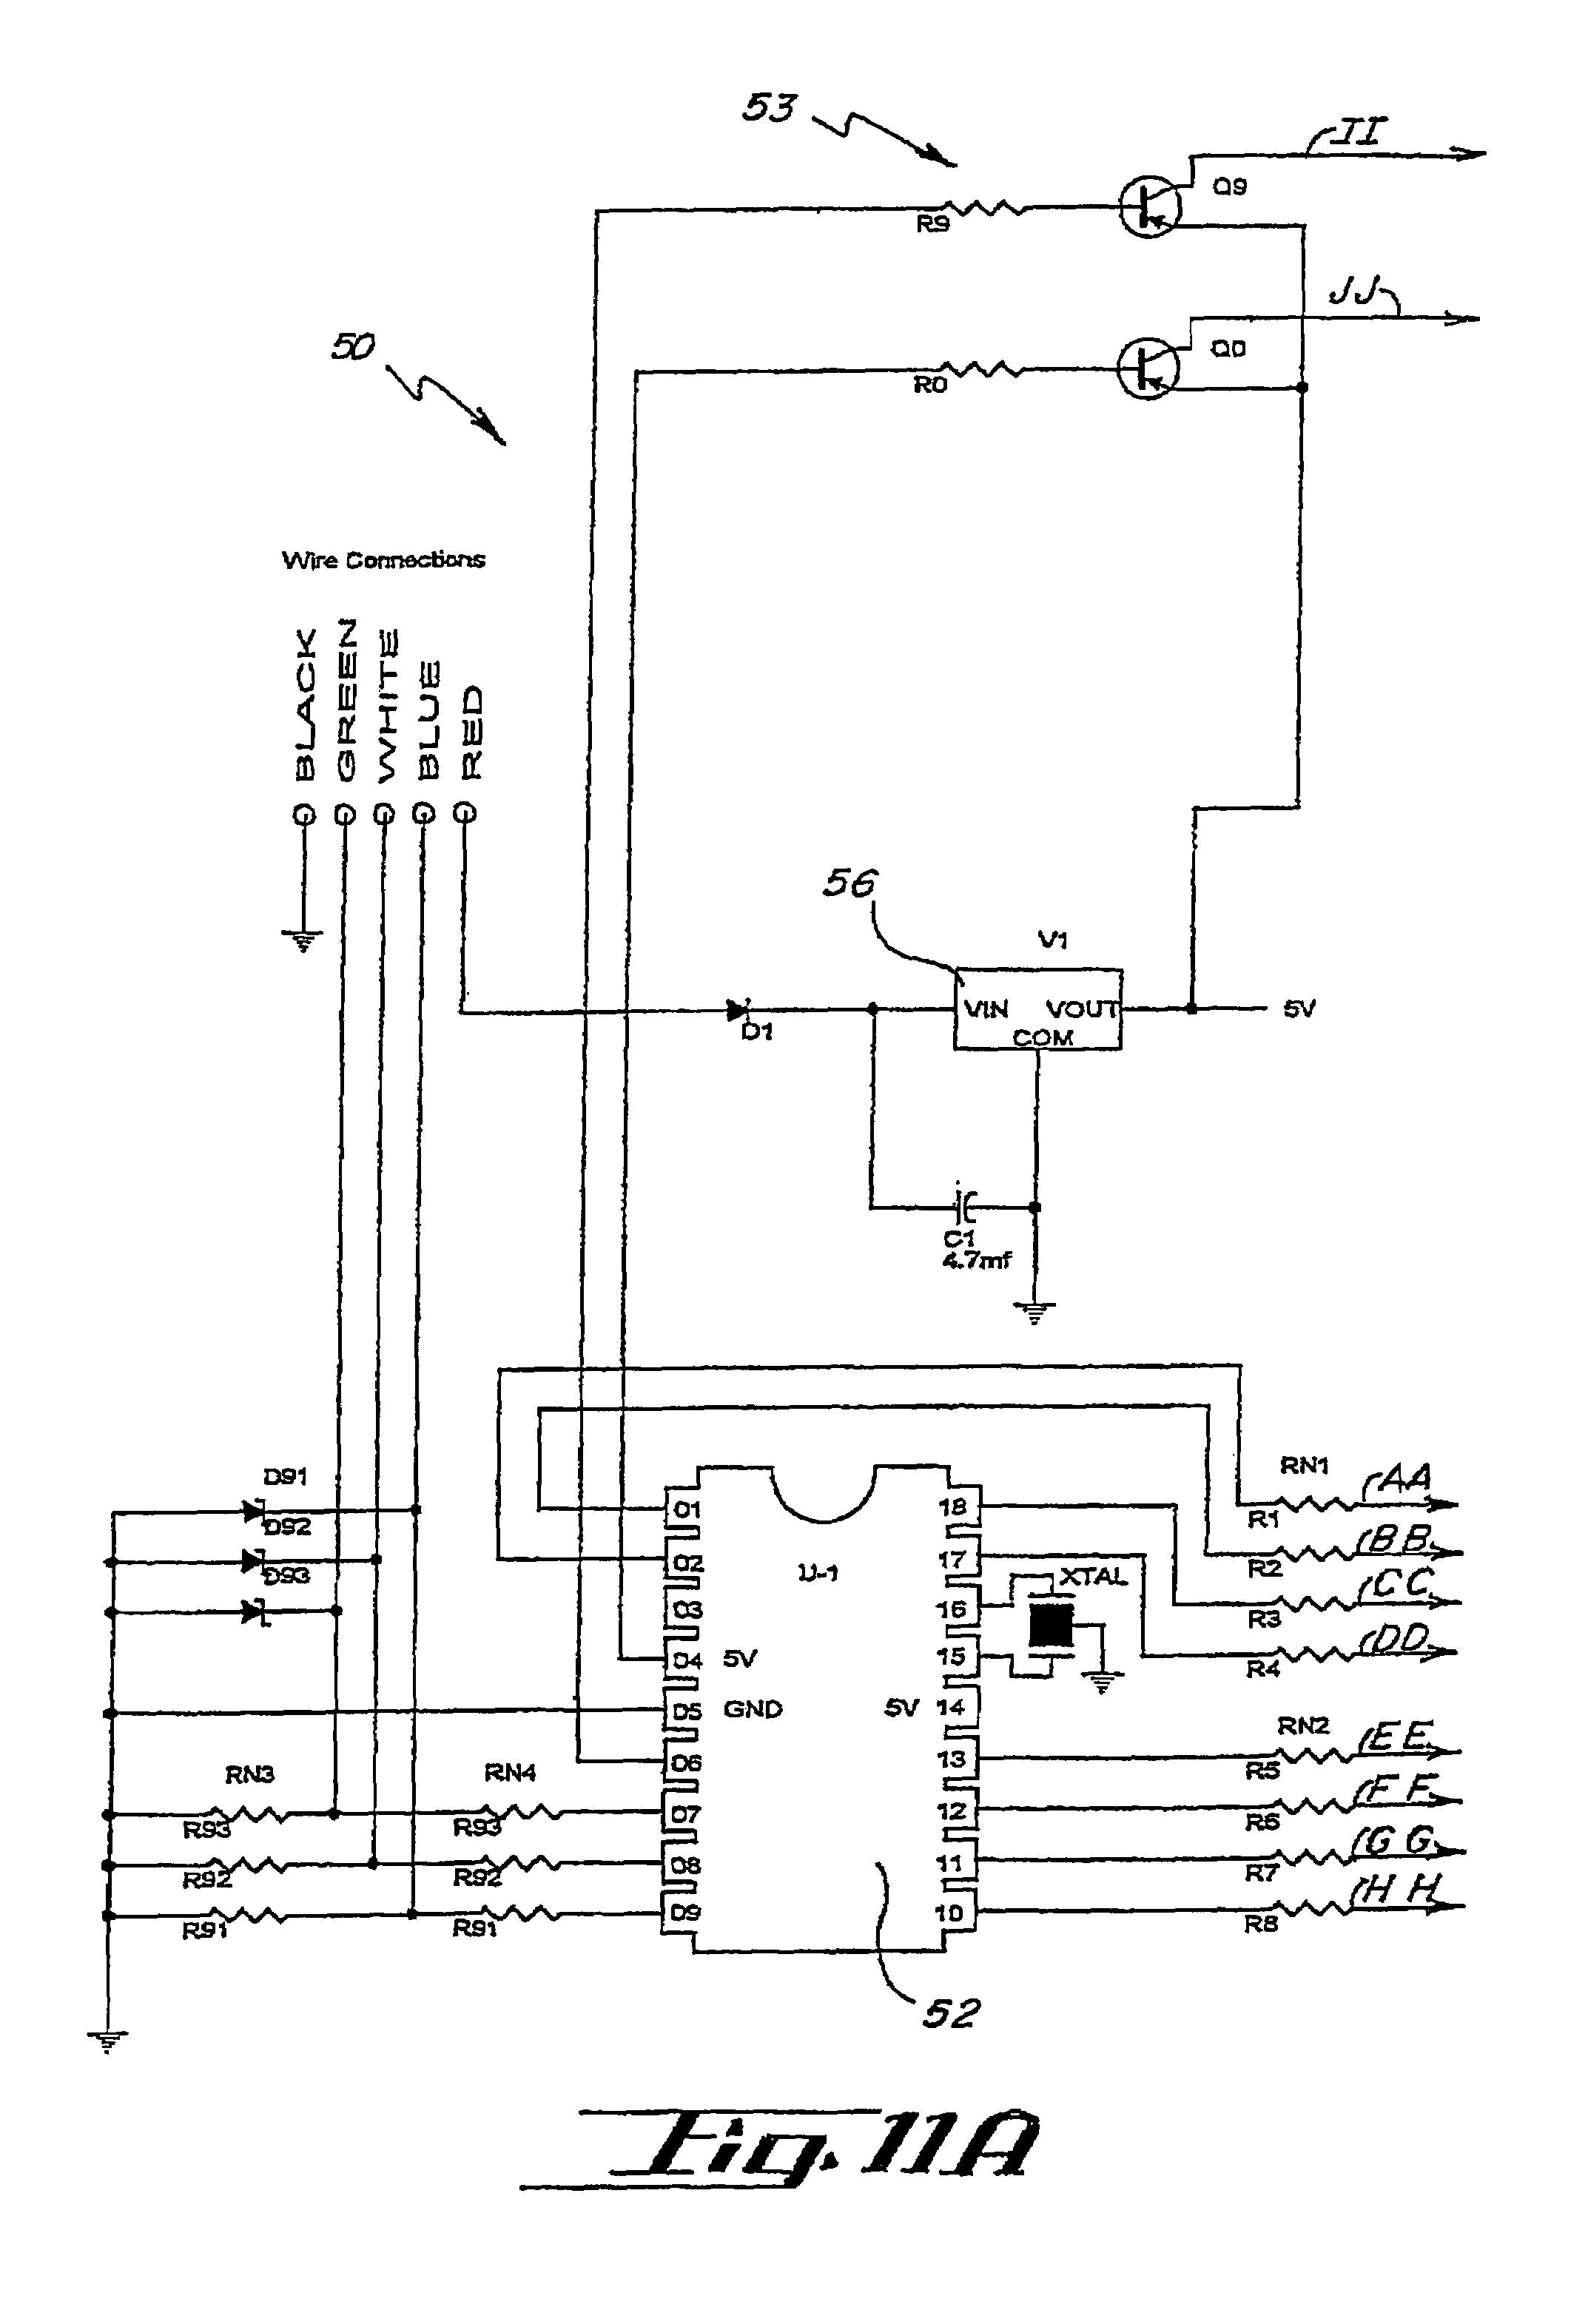 medium resolution of best of wiring diagram for shop lights diagrams digramssamplebest of wiring diagram for shop lights diagrams